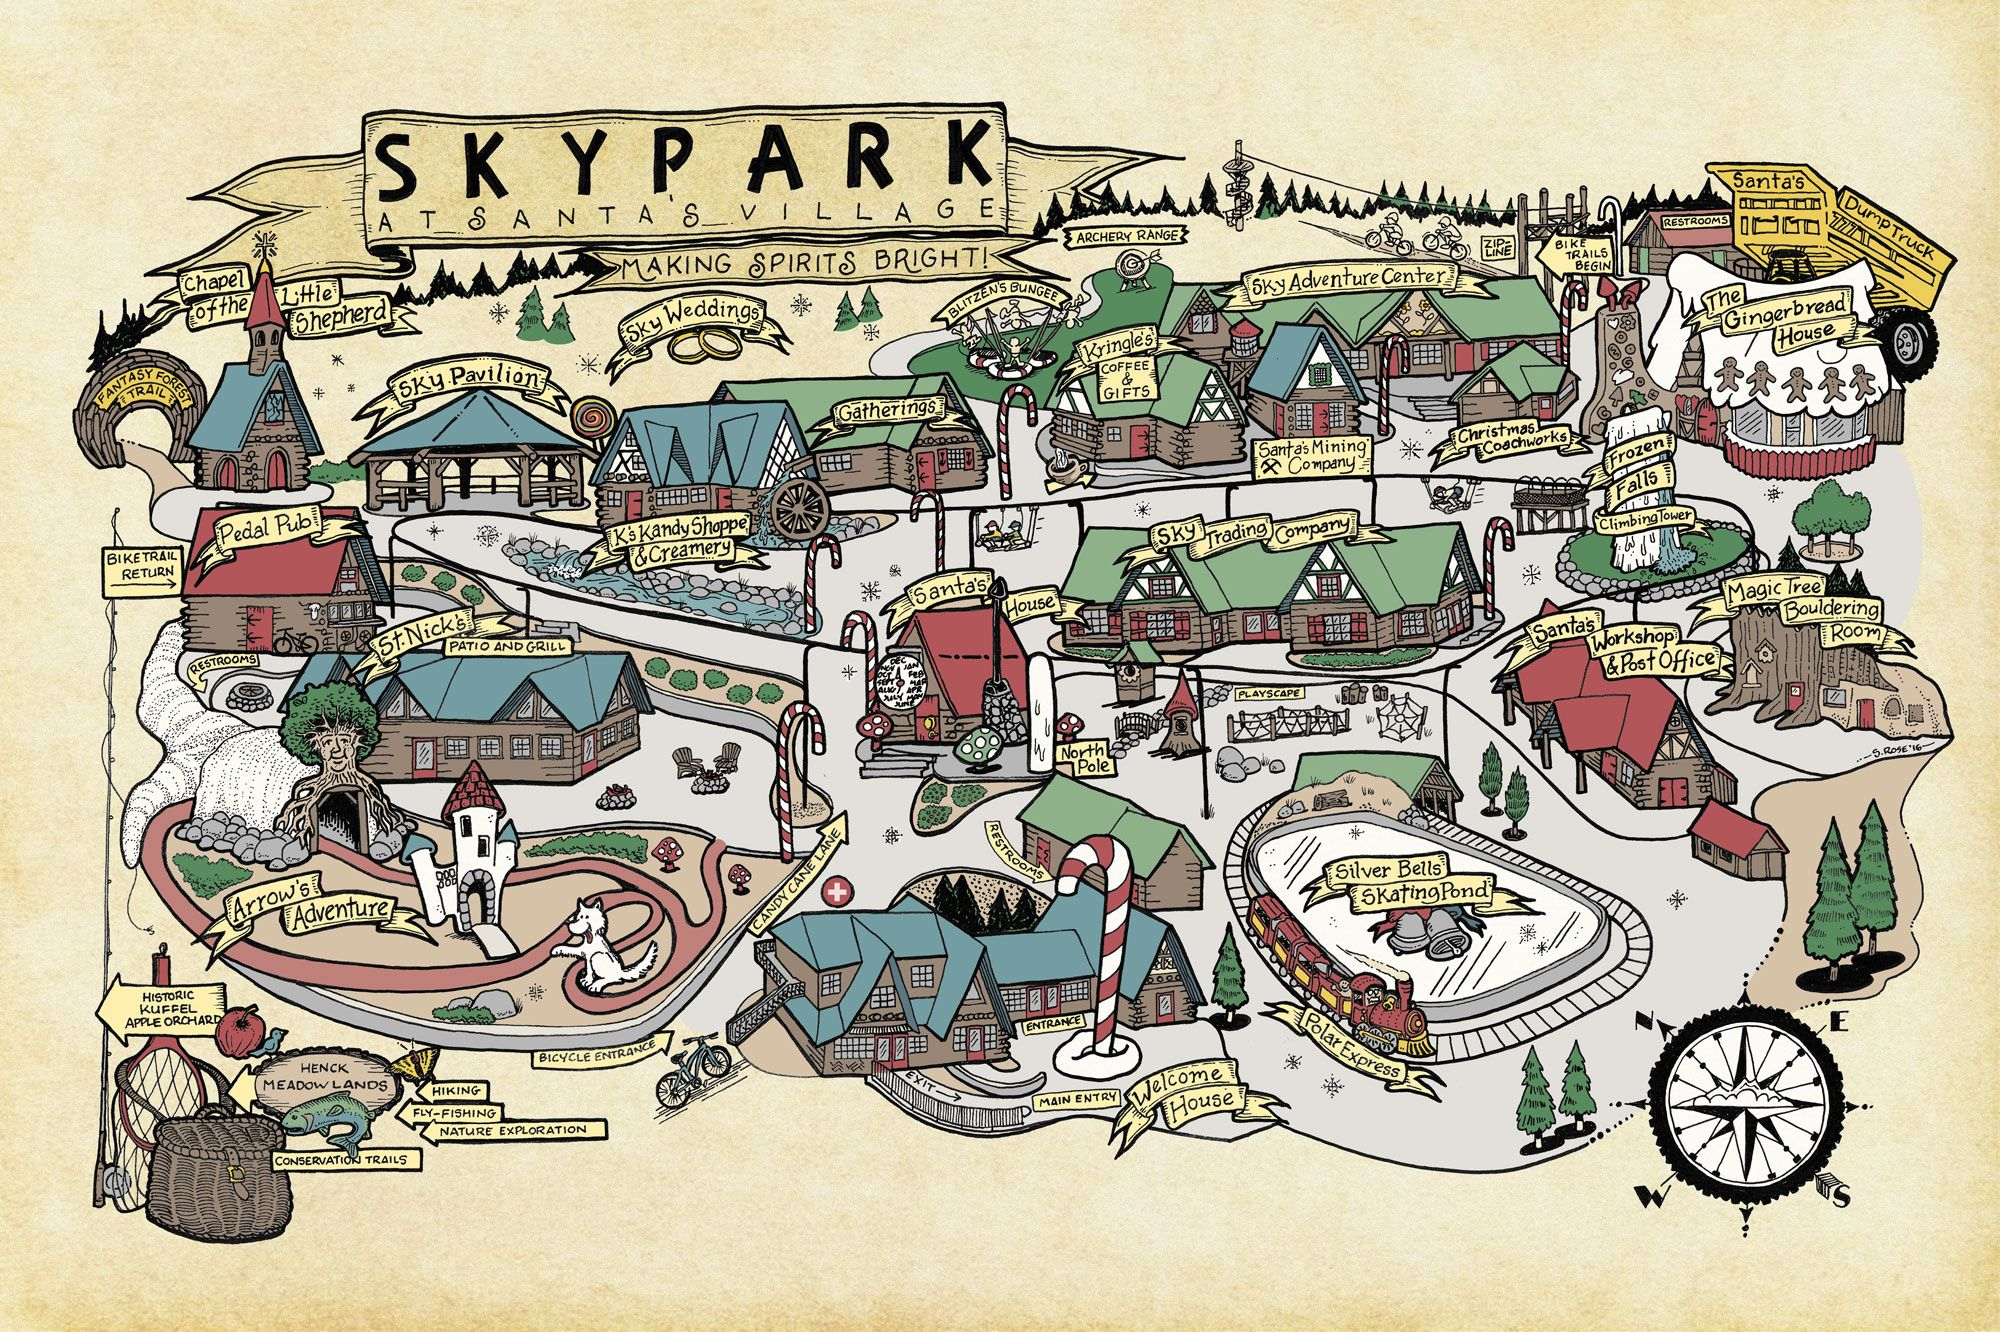 lake arrowhead village map Plan Your Trip To Skypark At Santa S Village Make The Most Of lake arrowhead village map